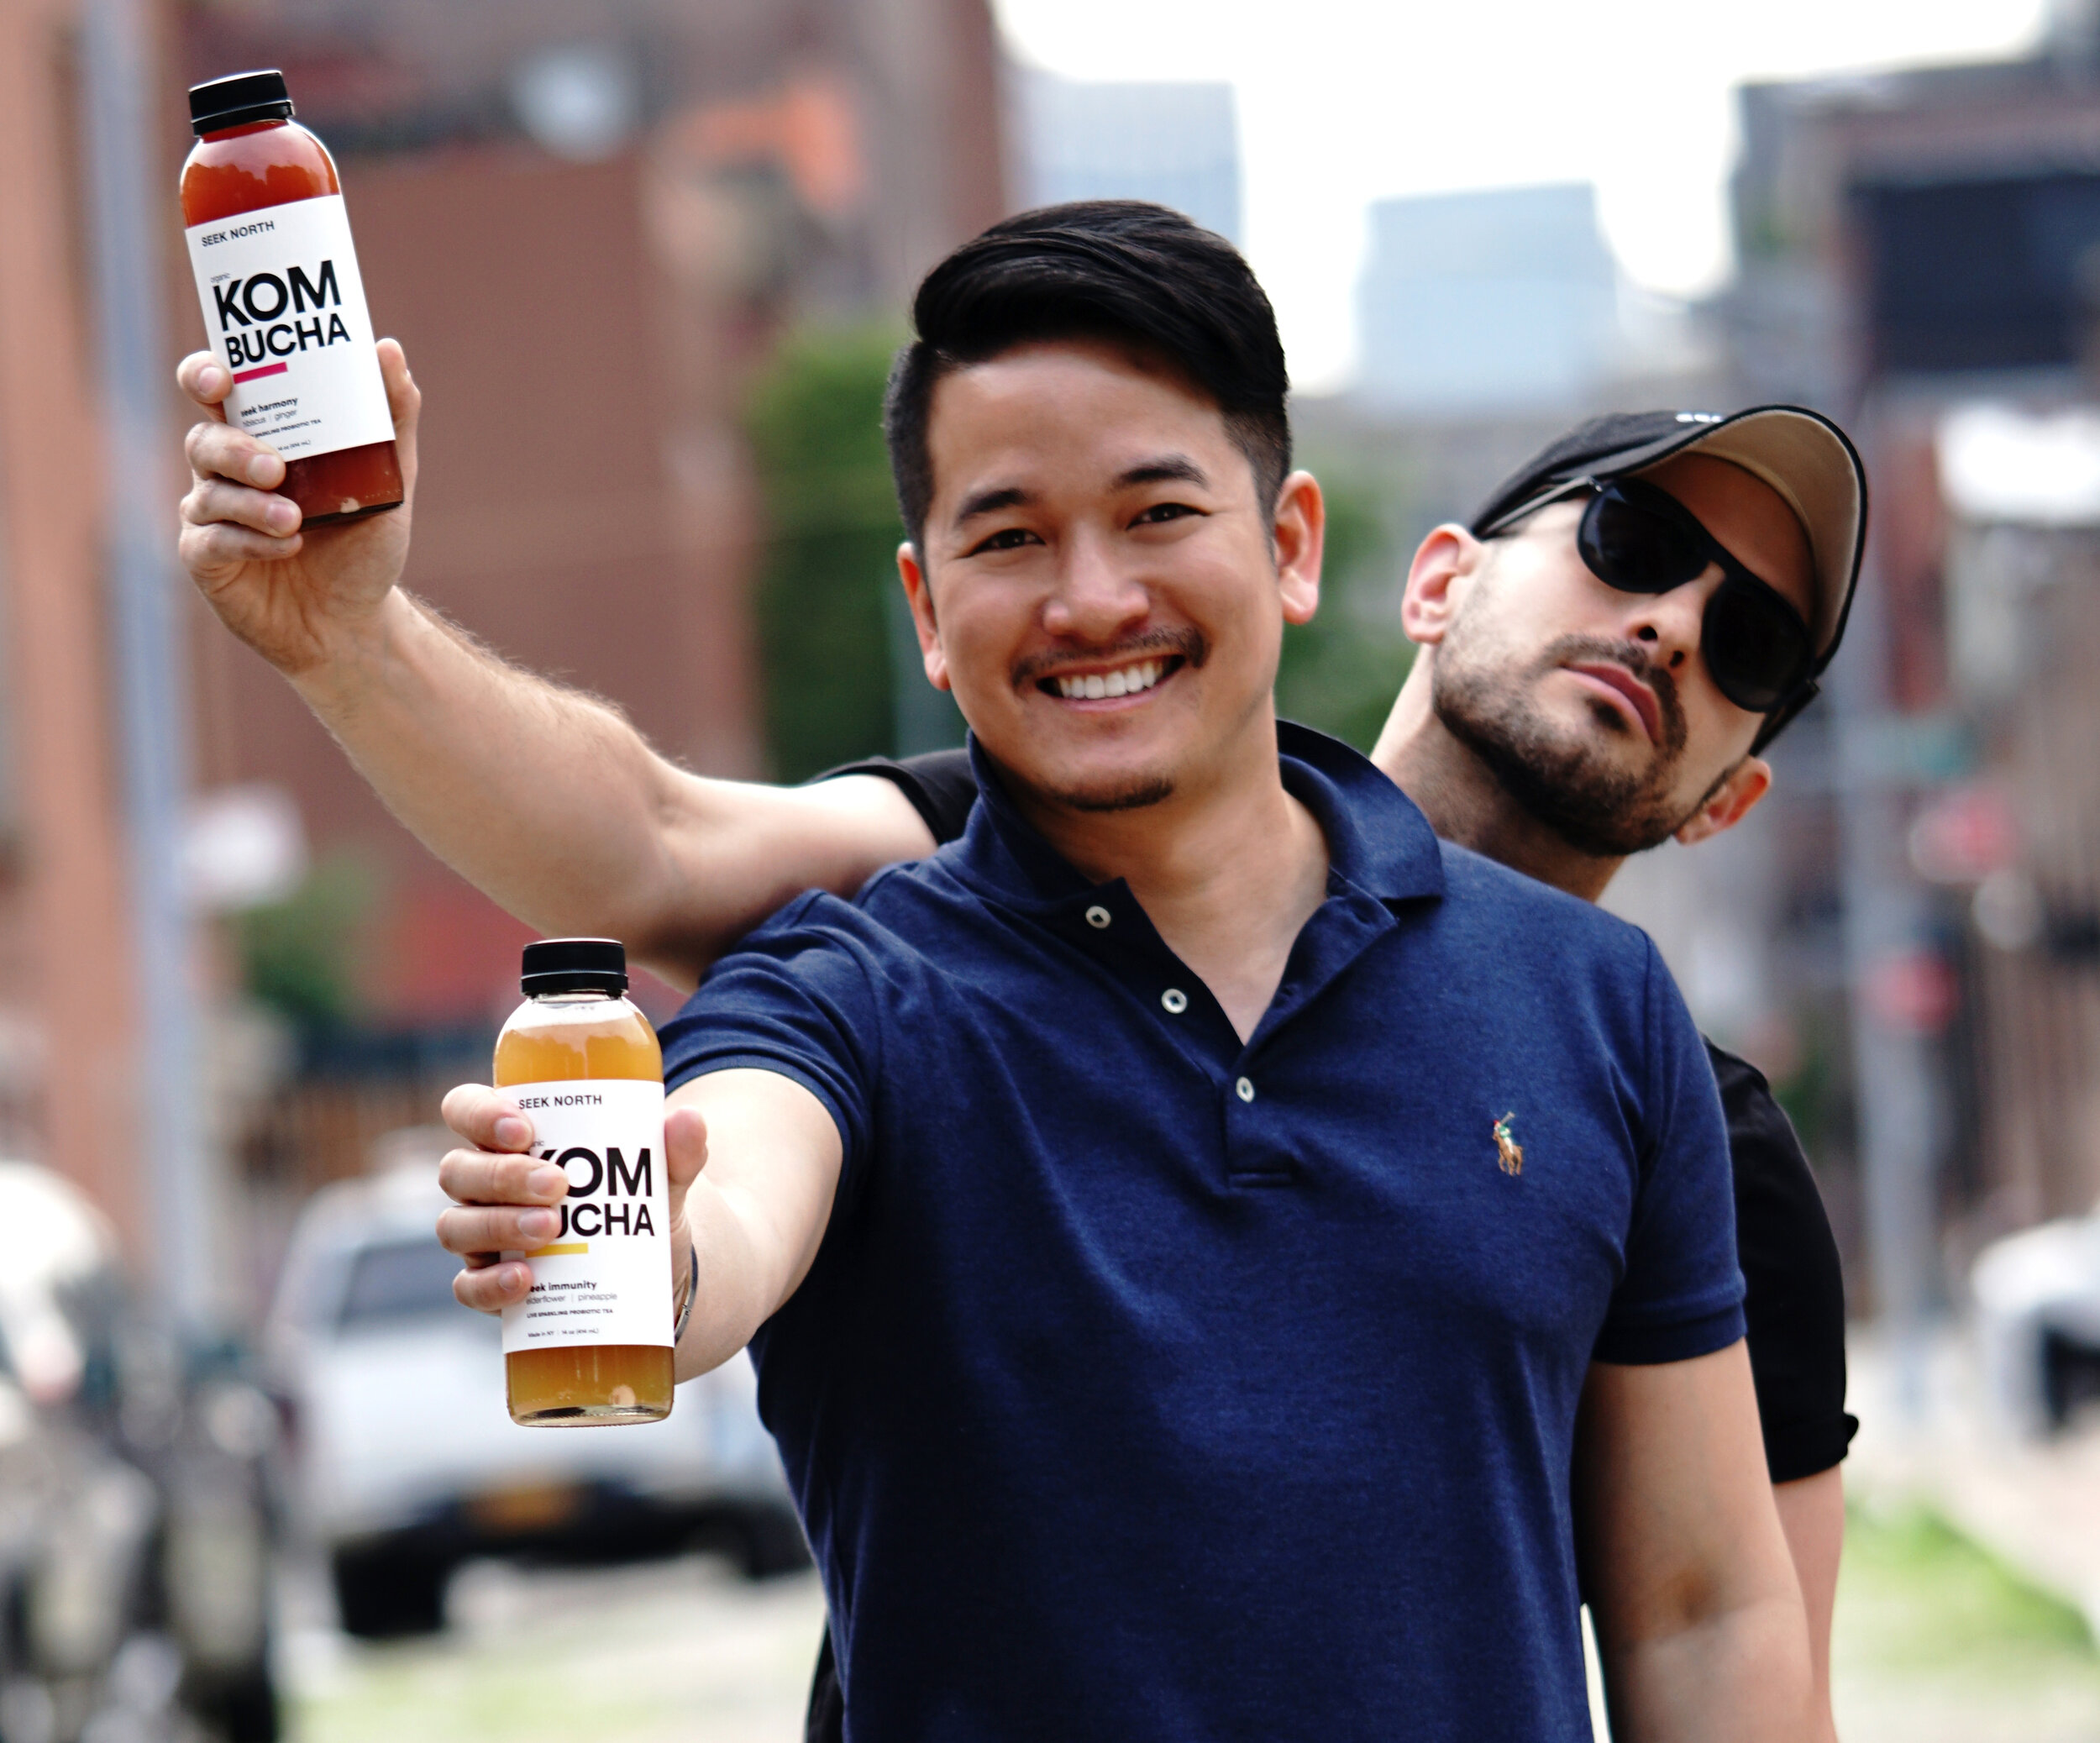 Co-founders: Philippe Trinh (front) & Julian Lesser (back)